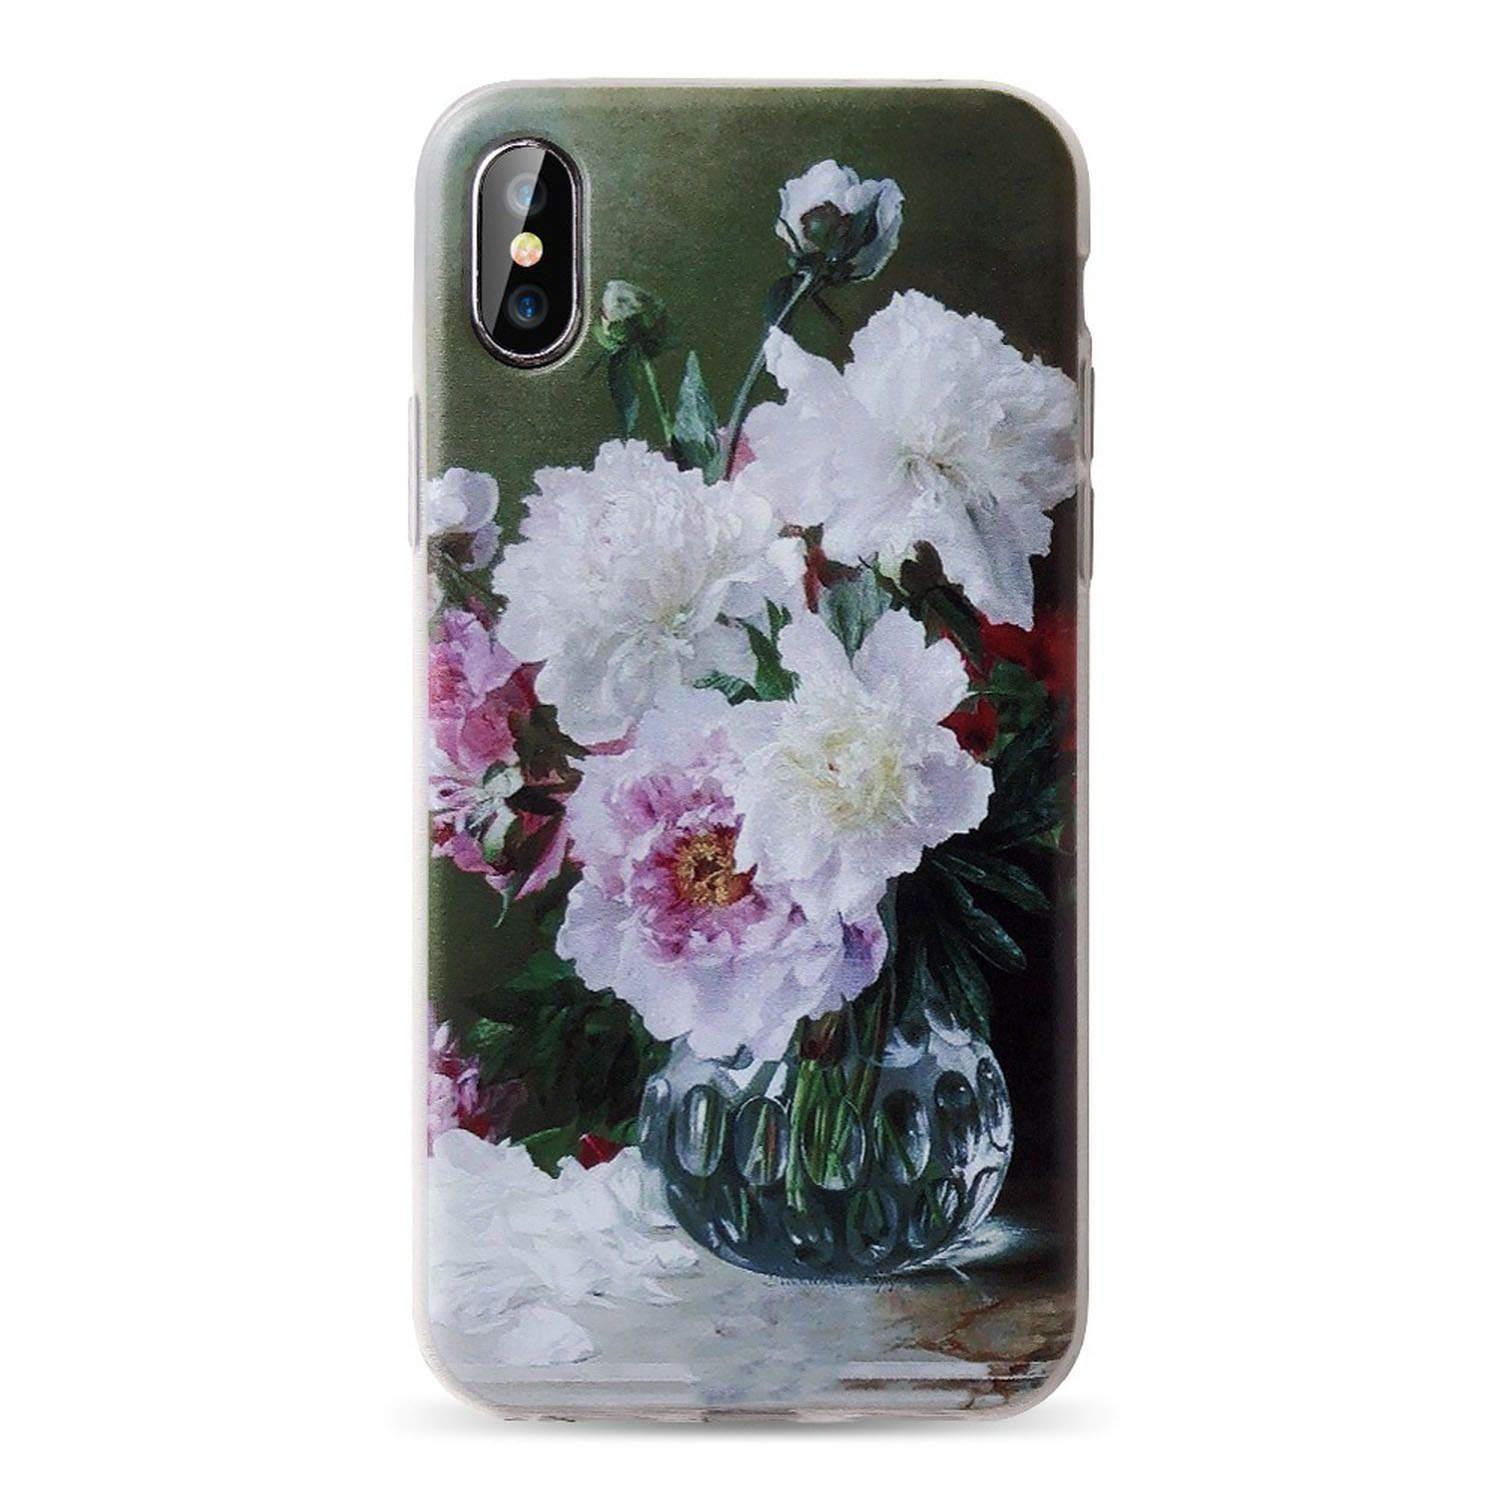 Amazon.com: Phone Case for Samsung Galaxy A3 A5 A7 J3 J5 J7 ...